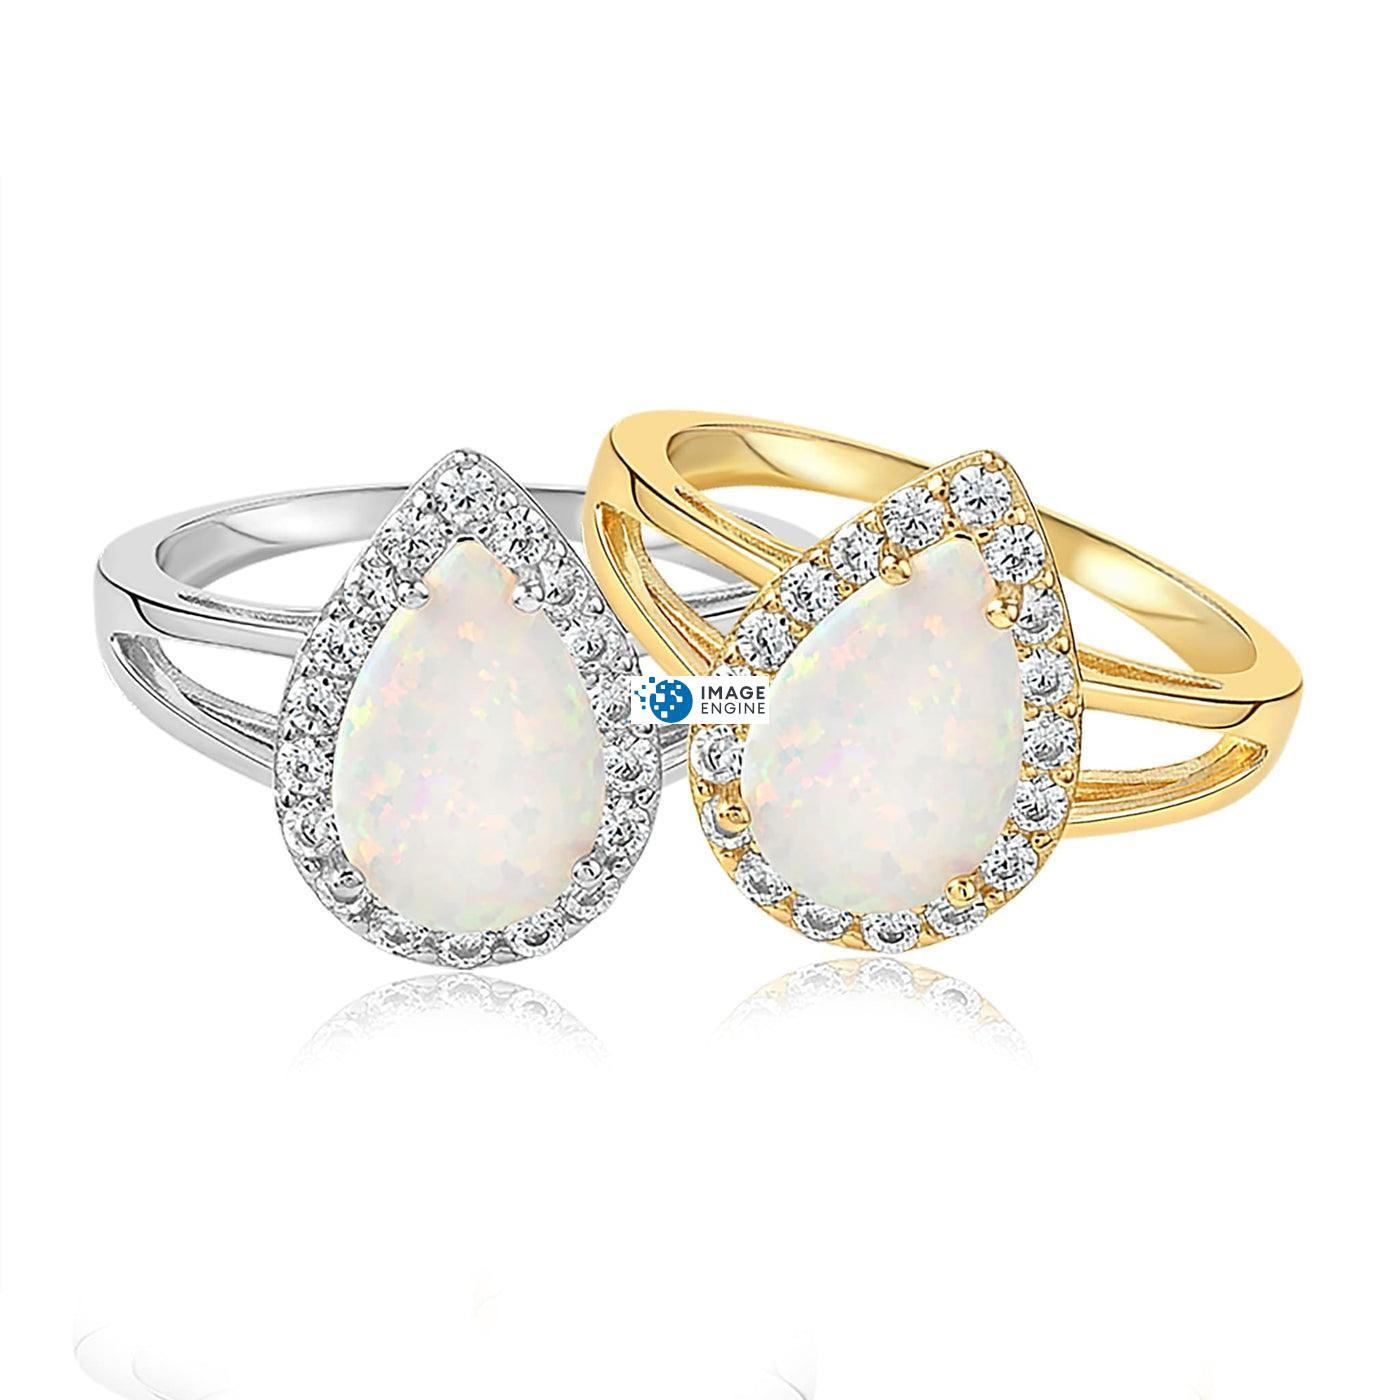 White Fire Champagne Opal Ring - Front View Side by Side - 18K Yellow Gold Vermeil and 925 Sterling Silver